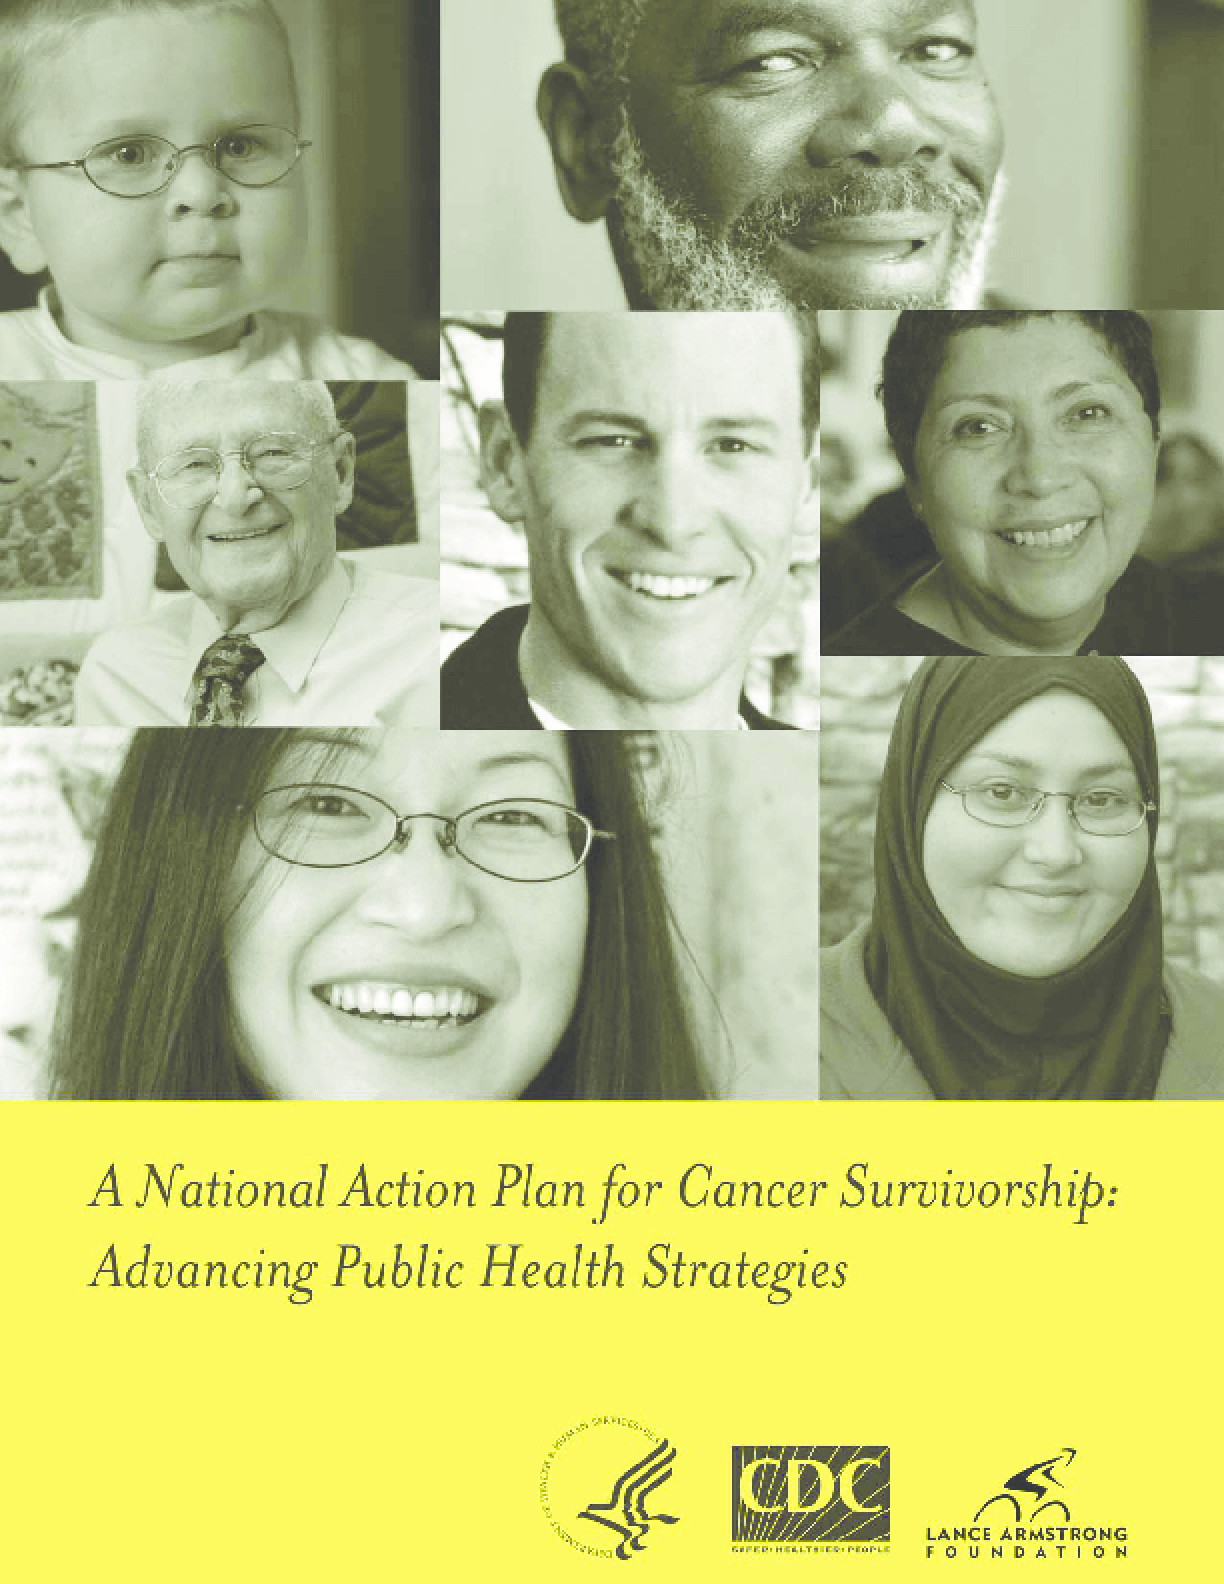 A National Action plan for Cancer Survivorship: Advancing Public Health Strategies